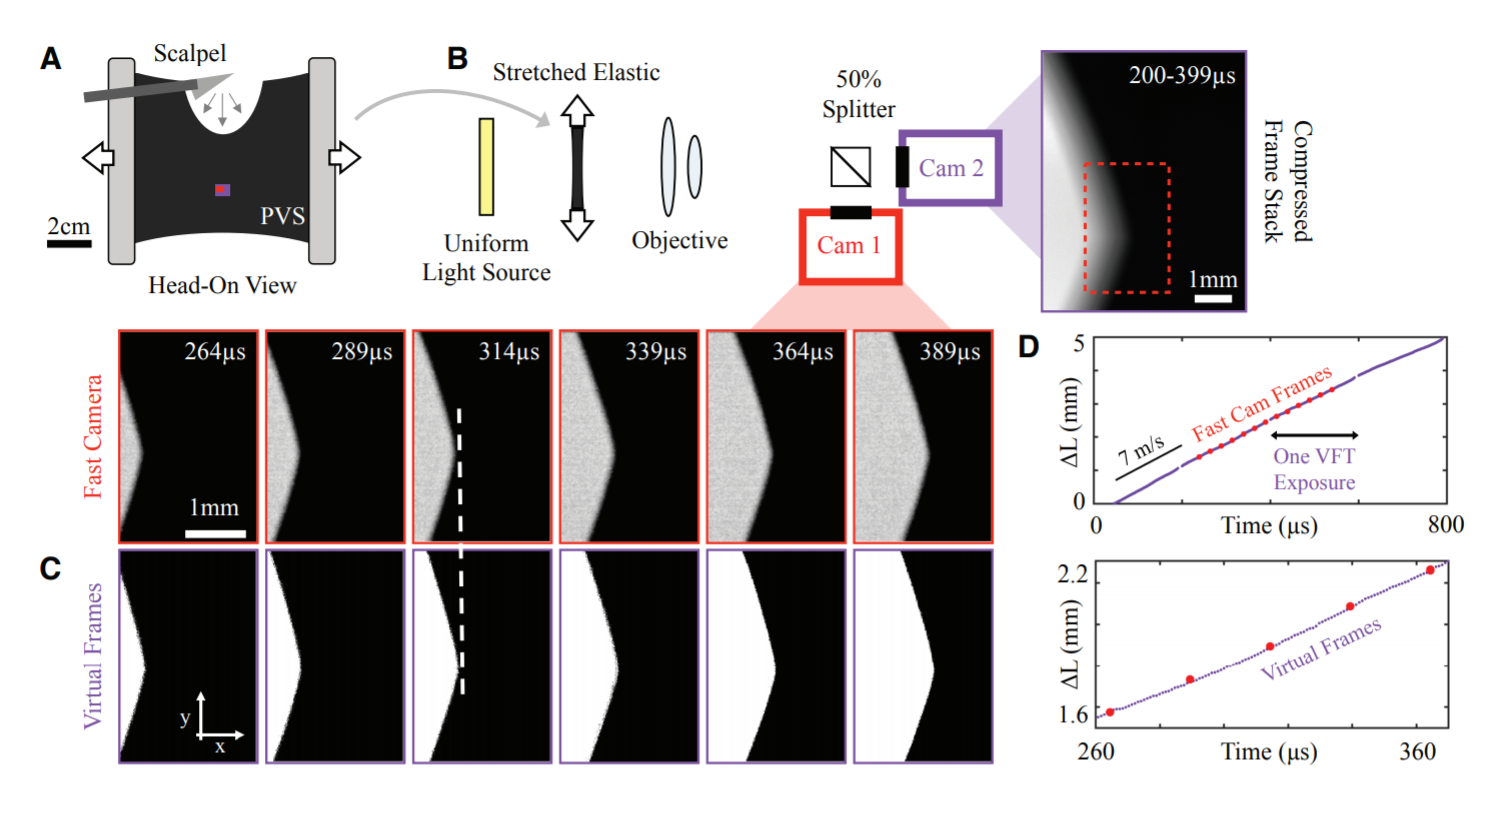 How to mod a smartphone camera so it shoots a million frames per second - MIT Technology Review